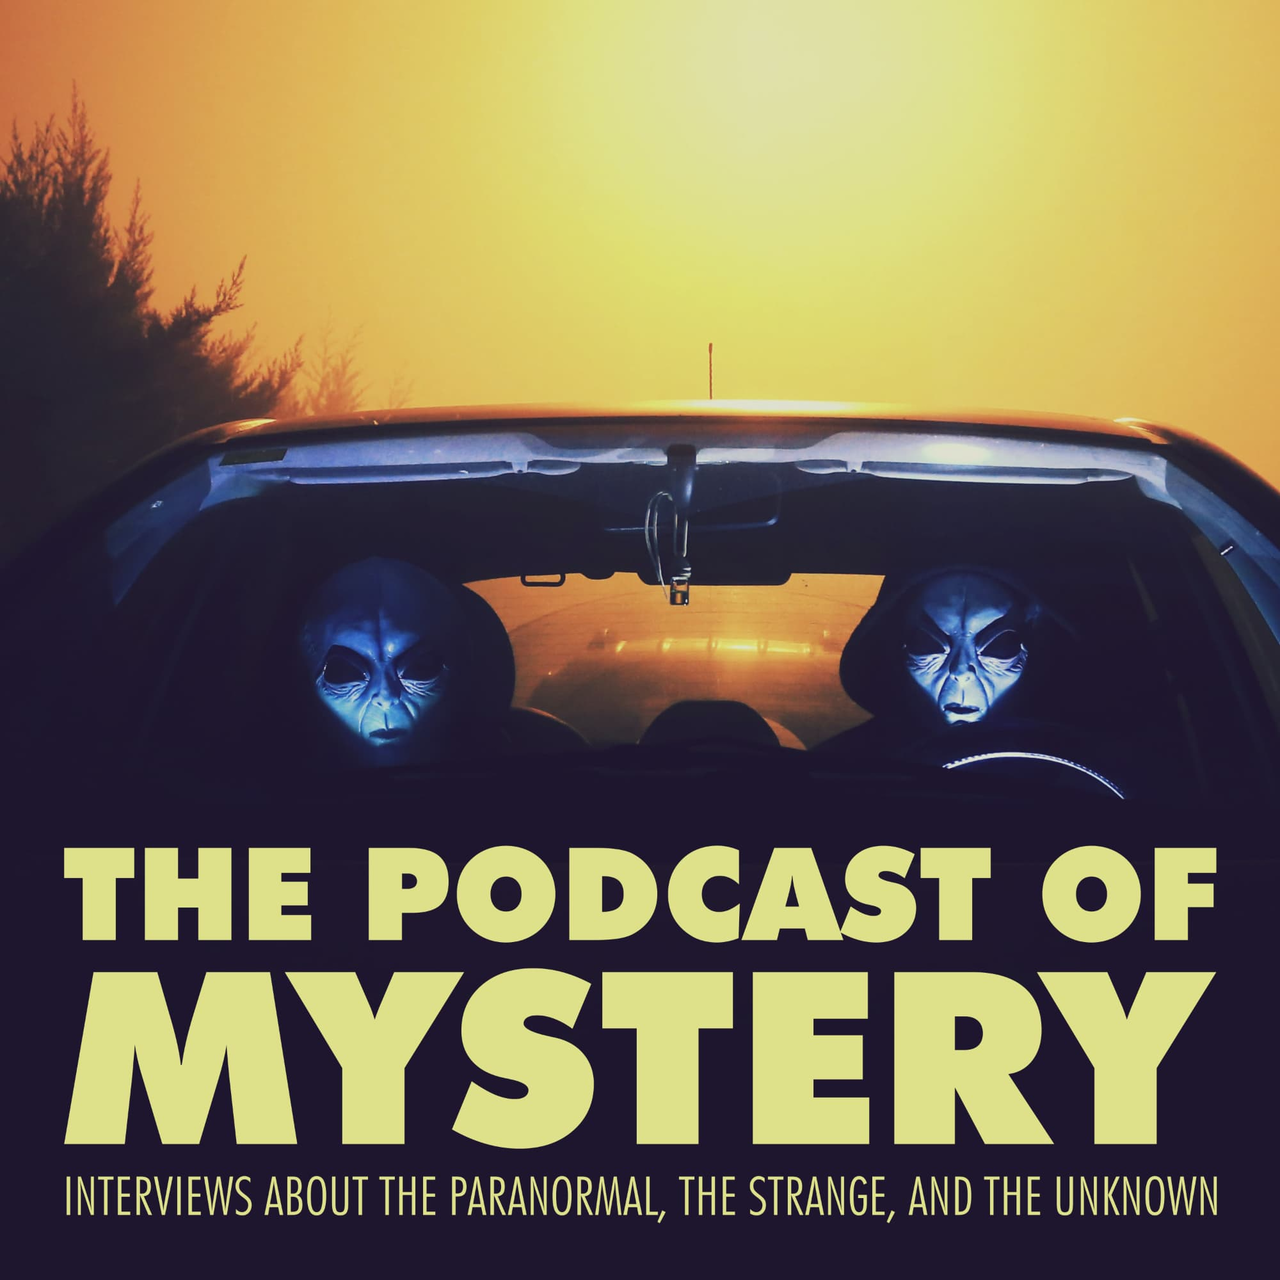 The Podcast of Mystery